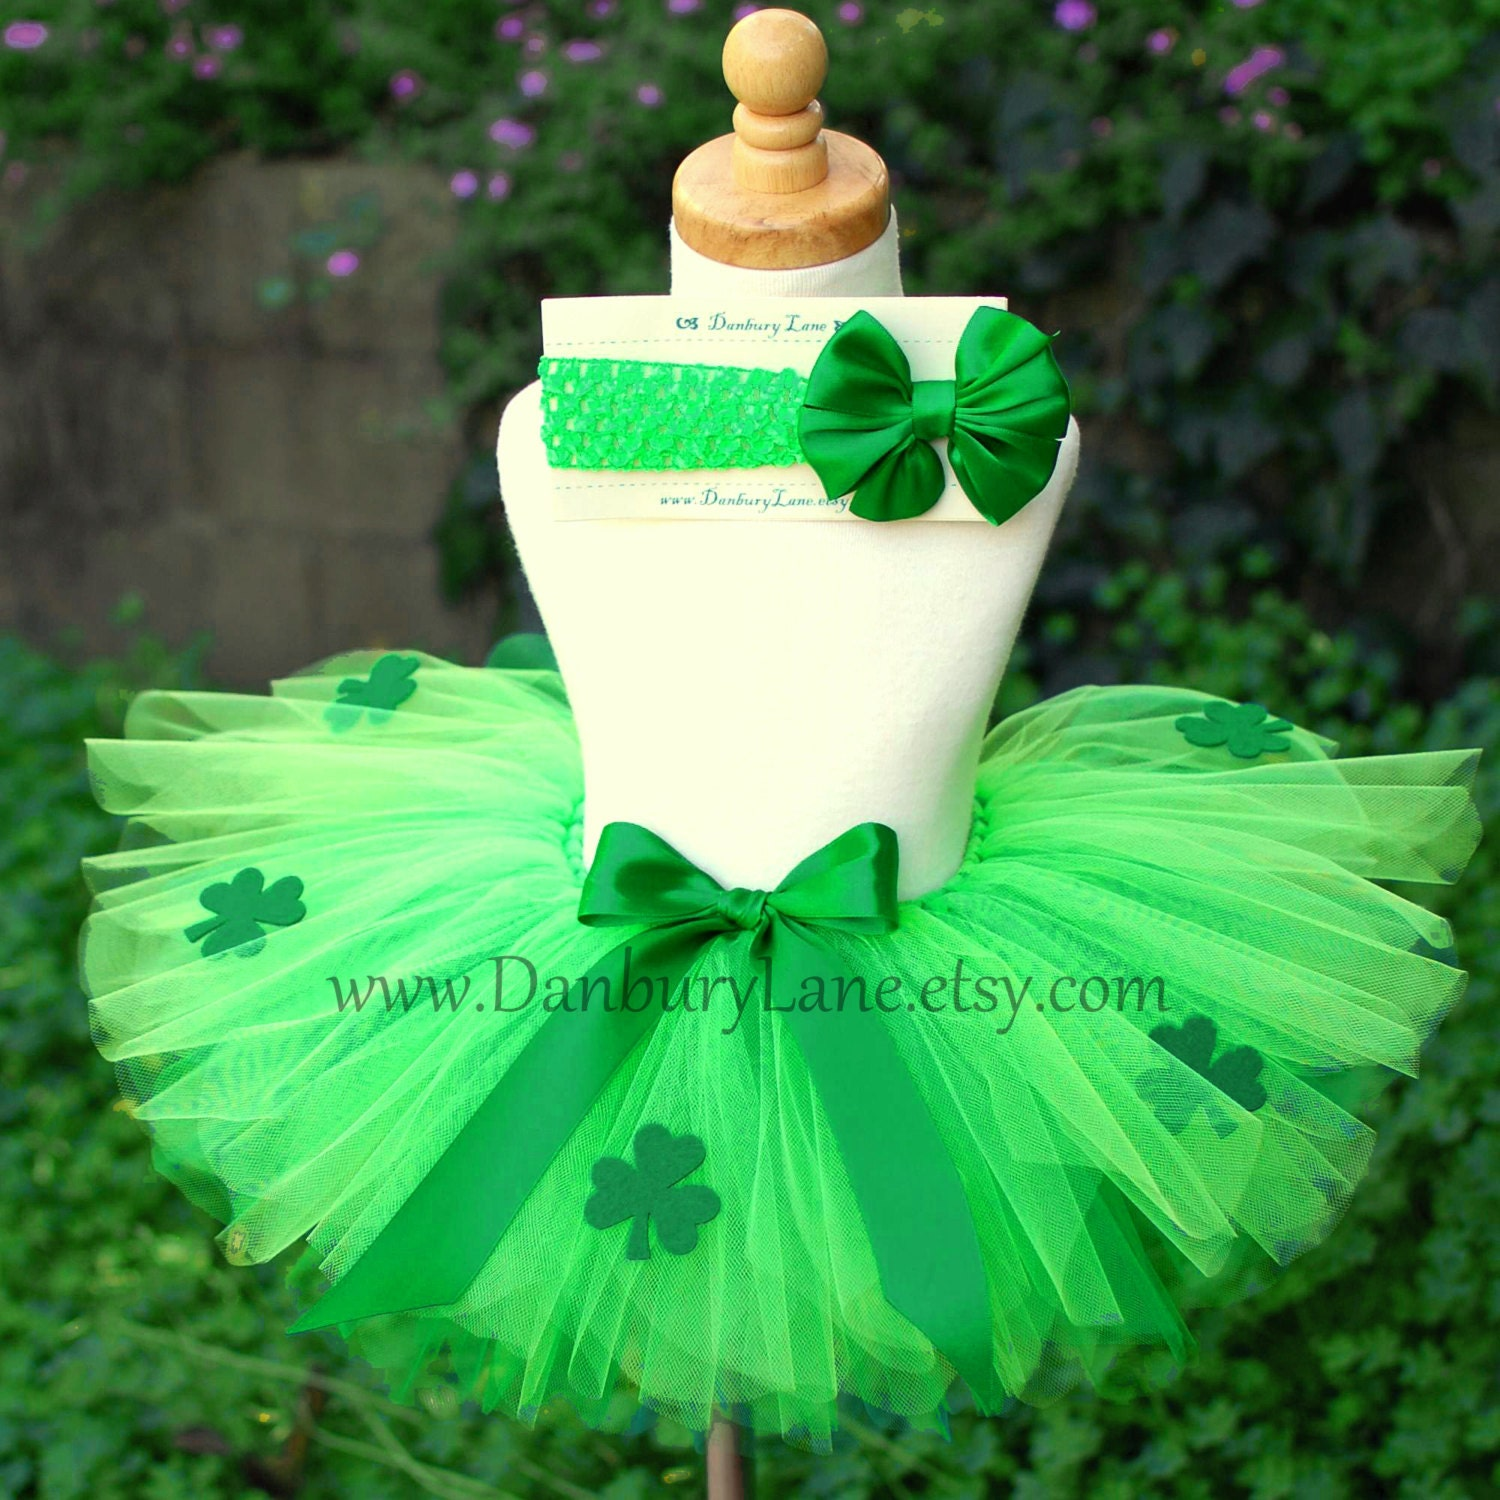 Green Baby Tutu only St Patricks Day costume for dress up or